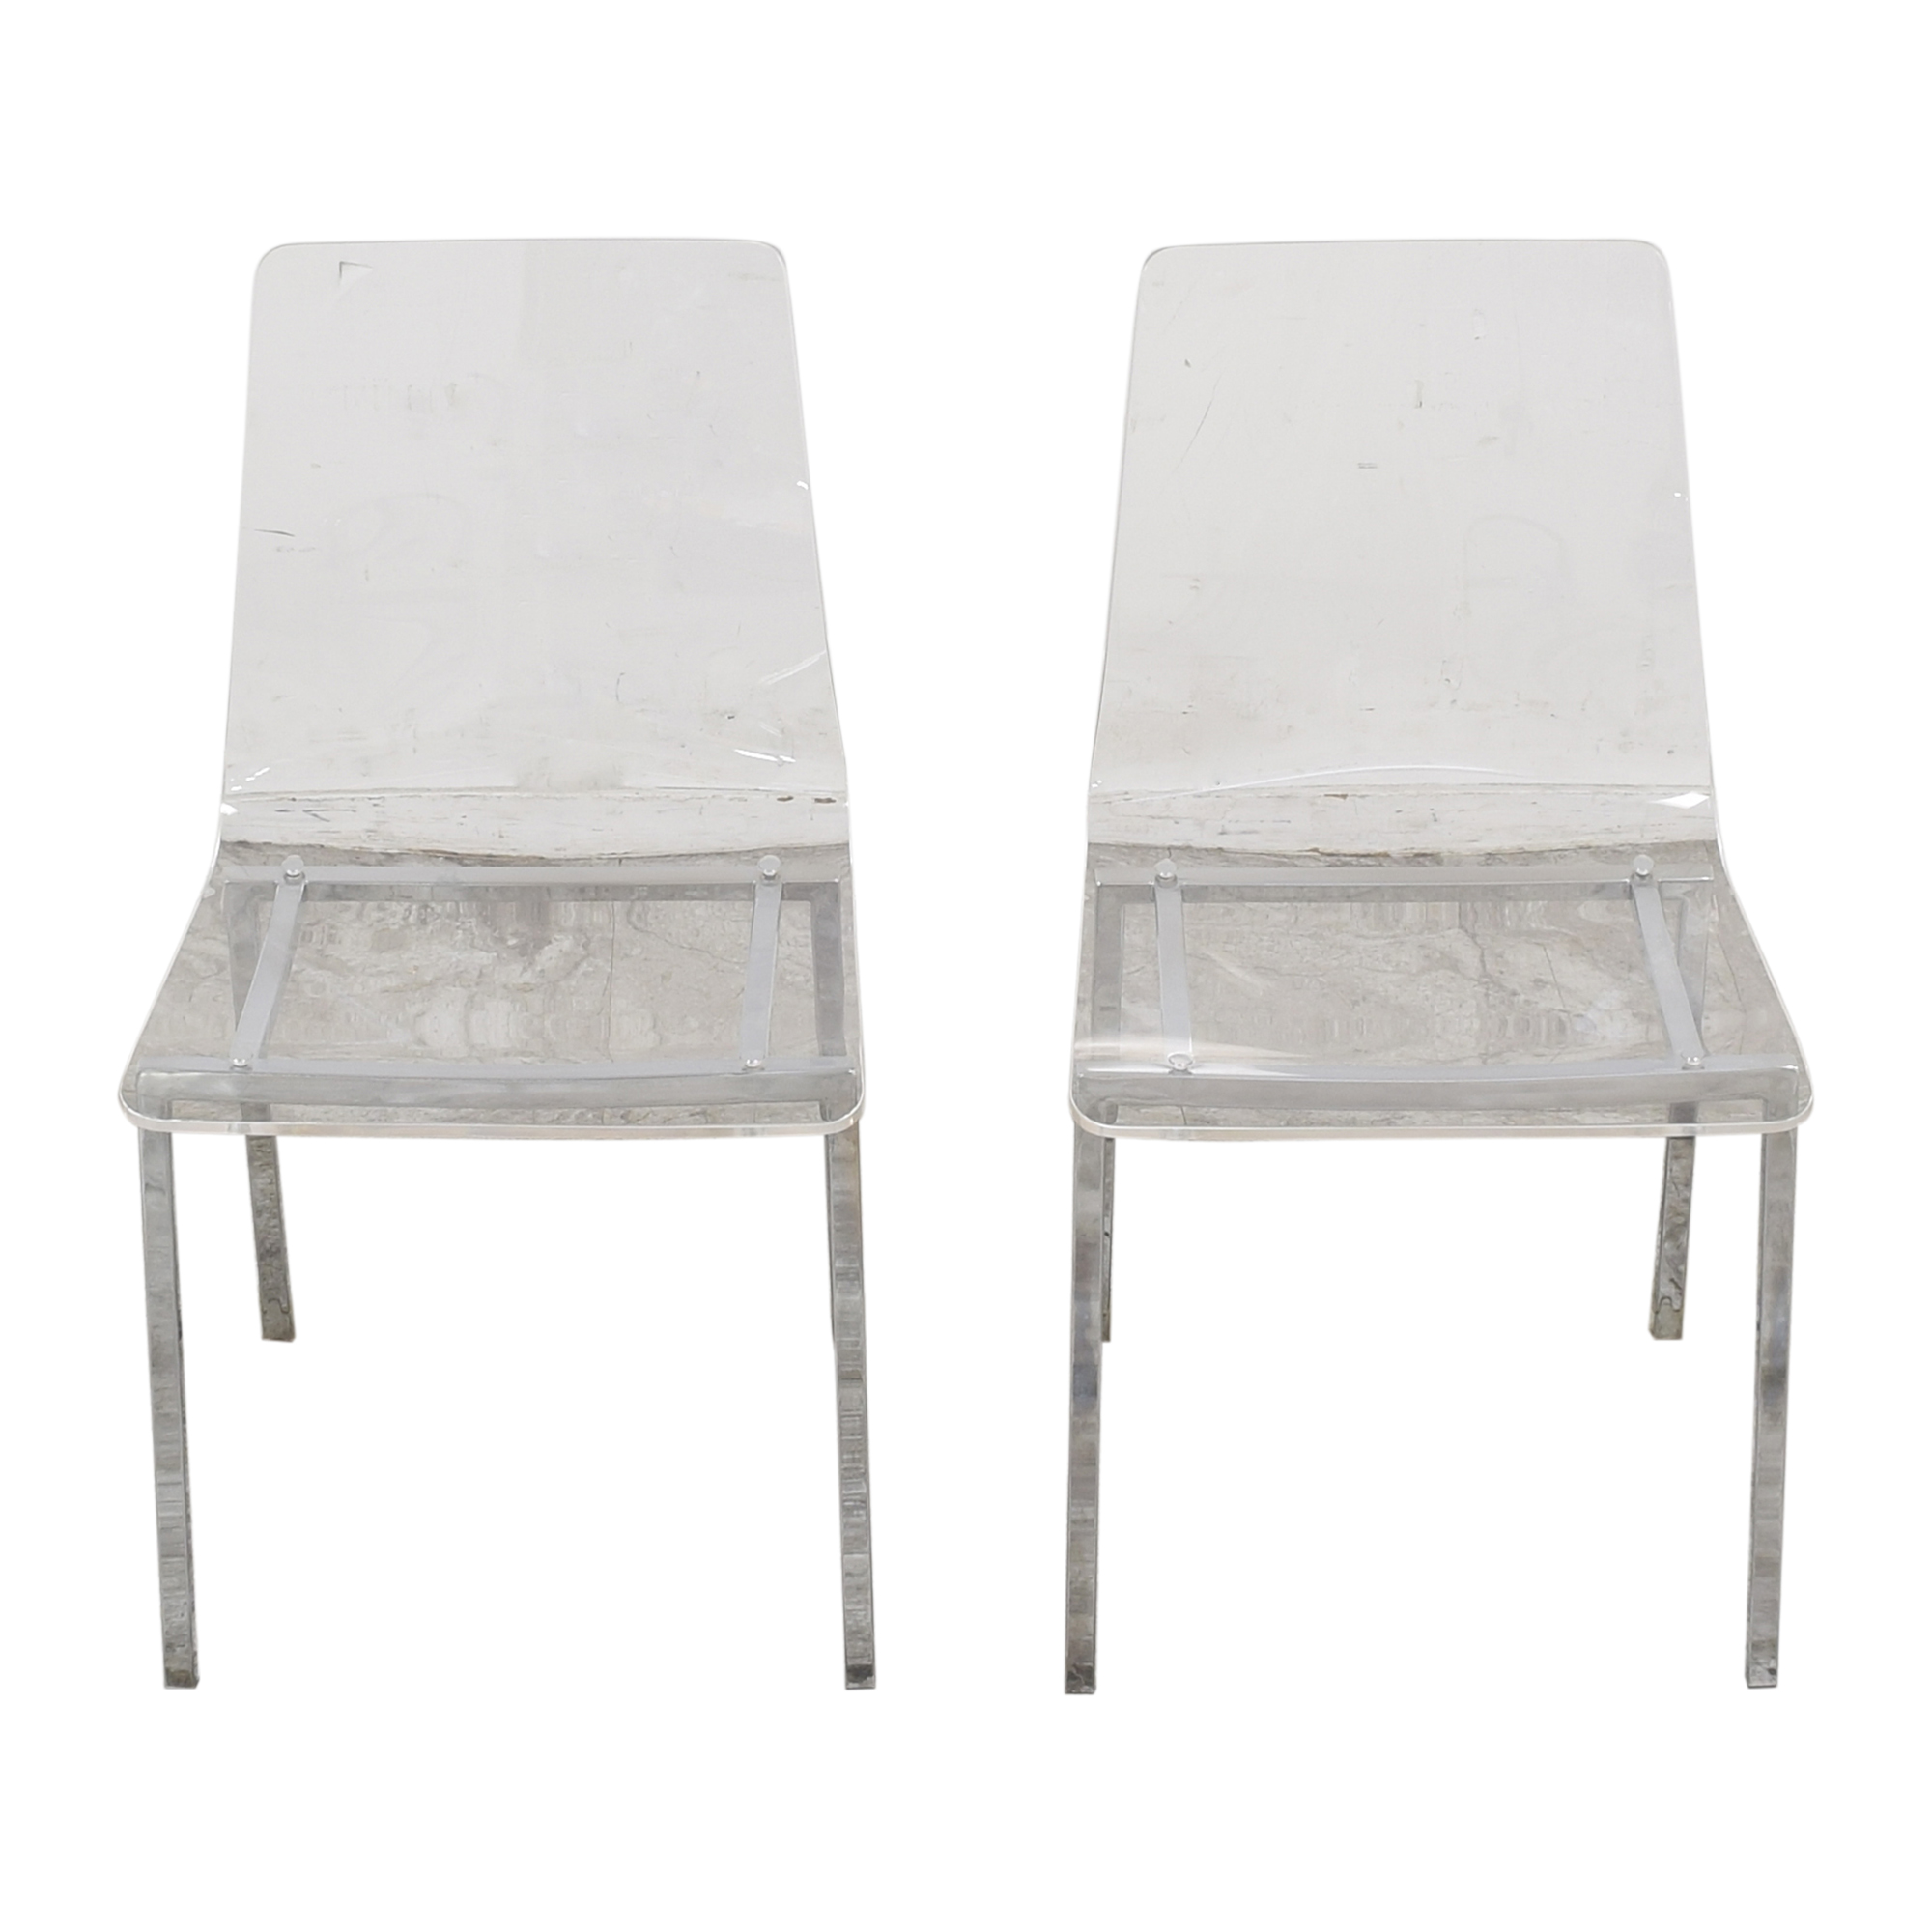 CB2 CB2 Vapor Acrylic Clear Dining Room Chairs Chairs